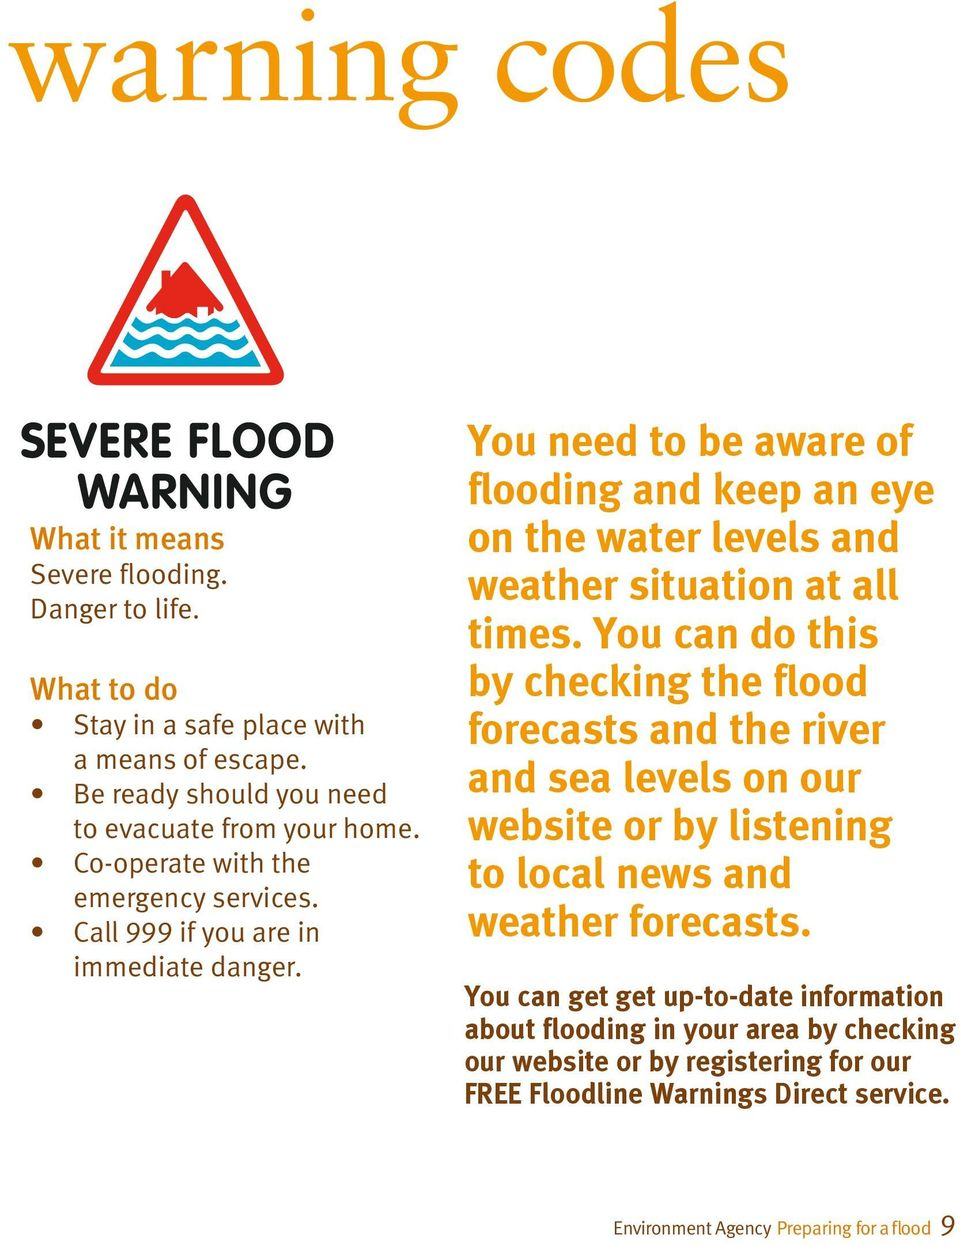 You need to be aware of flooding and keep an eye on the water levels and weather situation at all times.